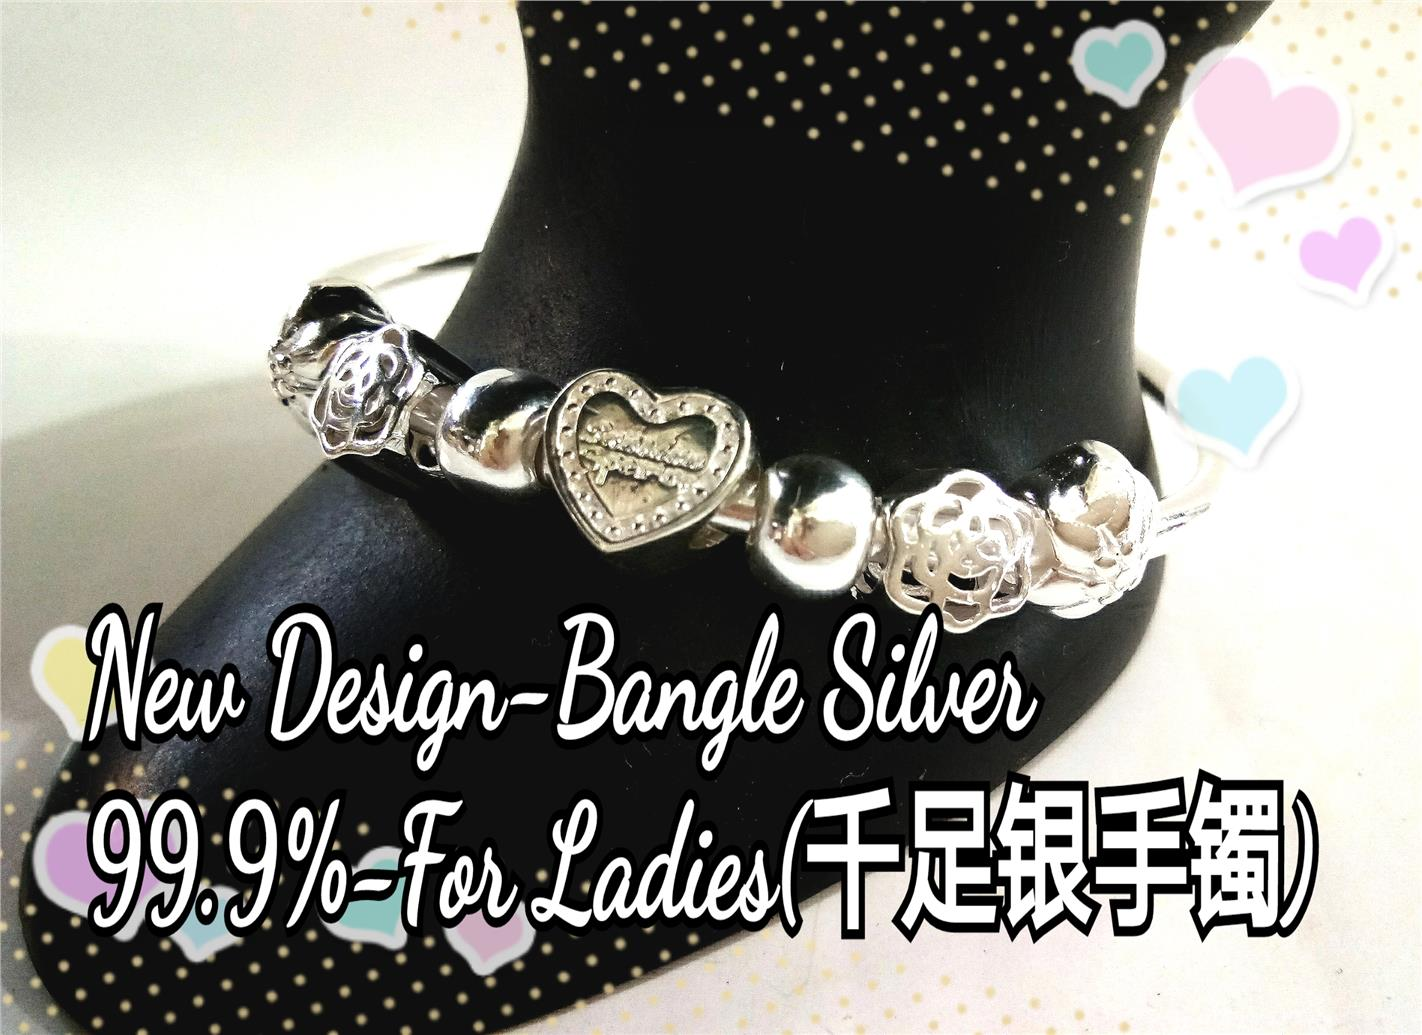 New Design-Bangle Silver 99.9% for Ladies#1